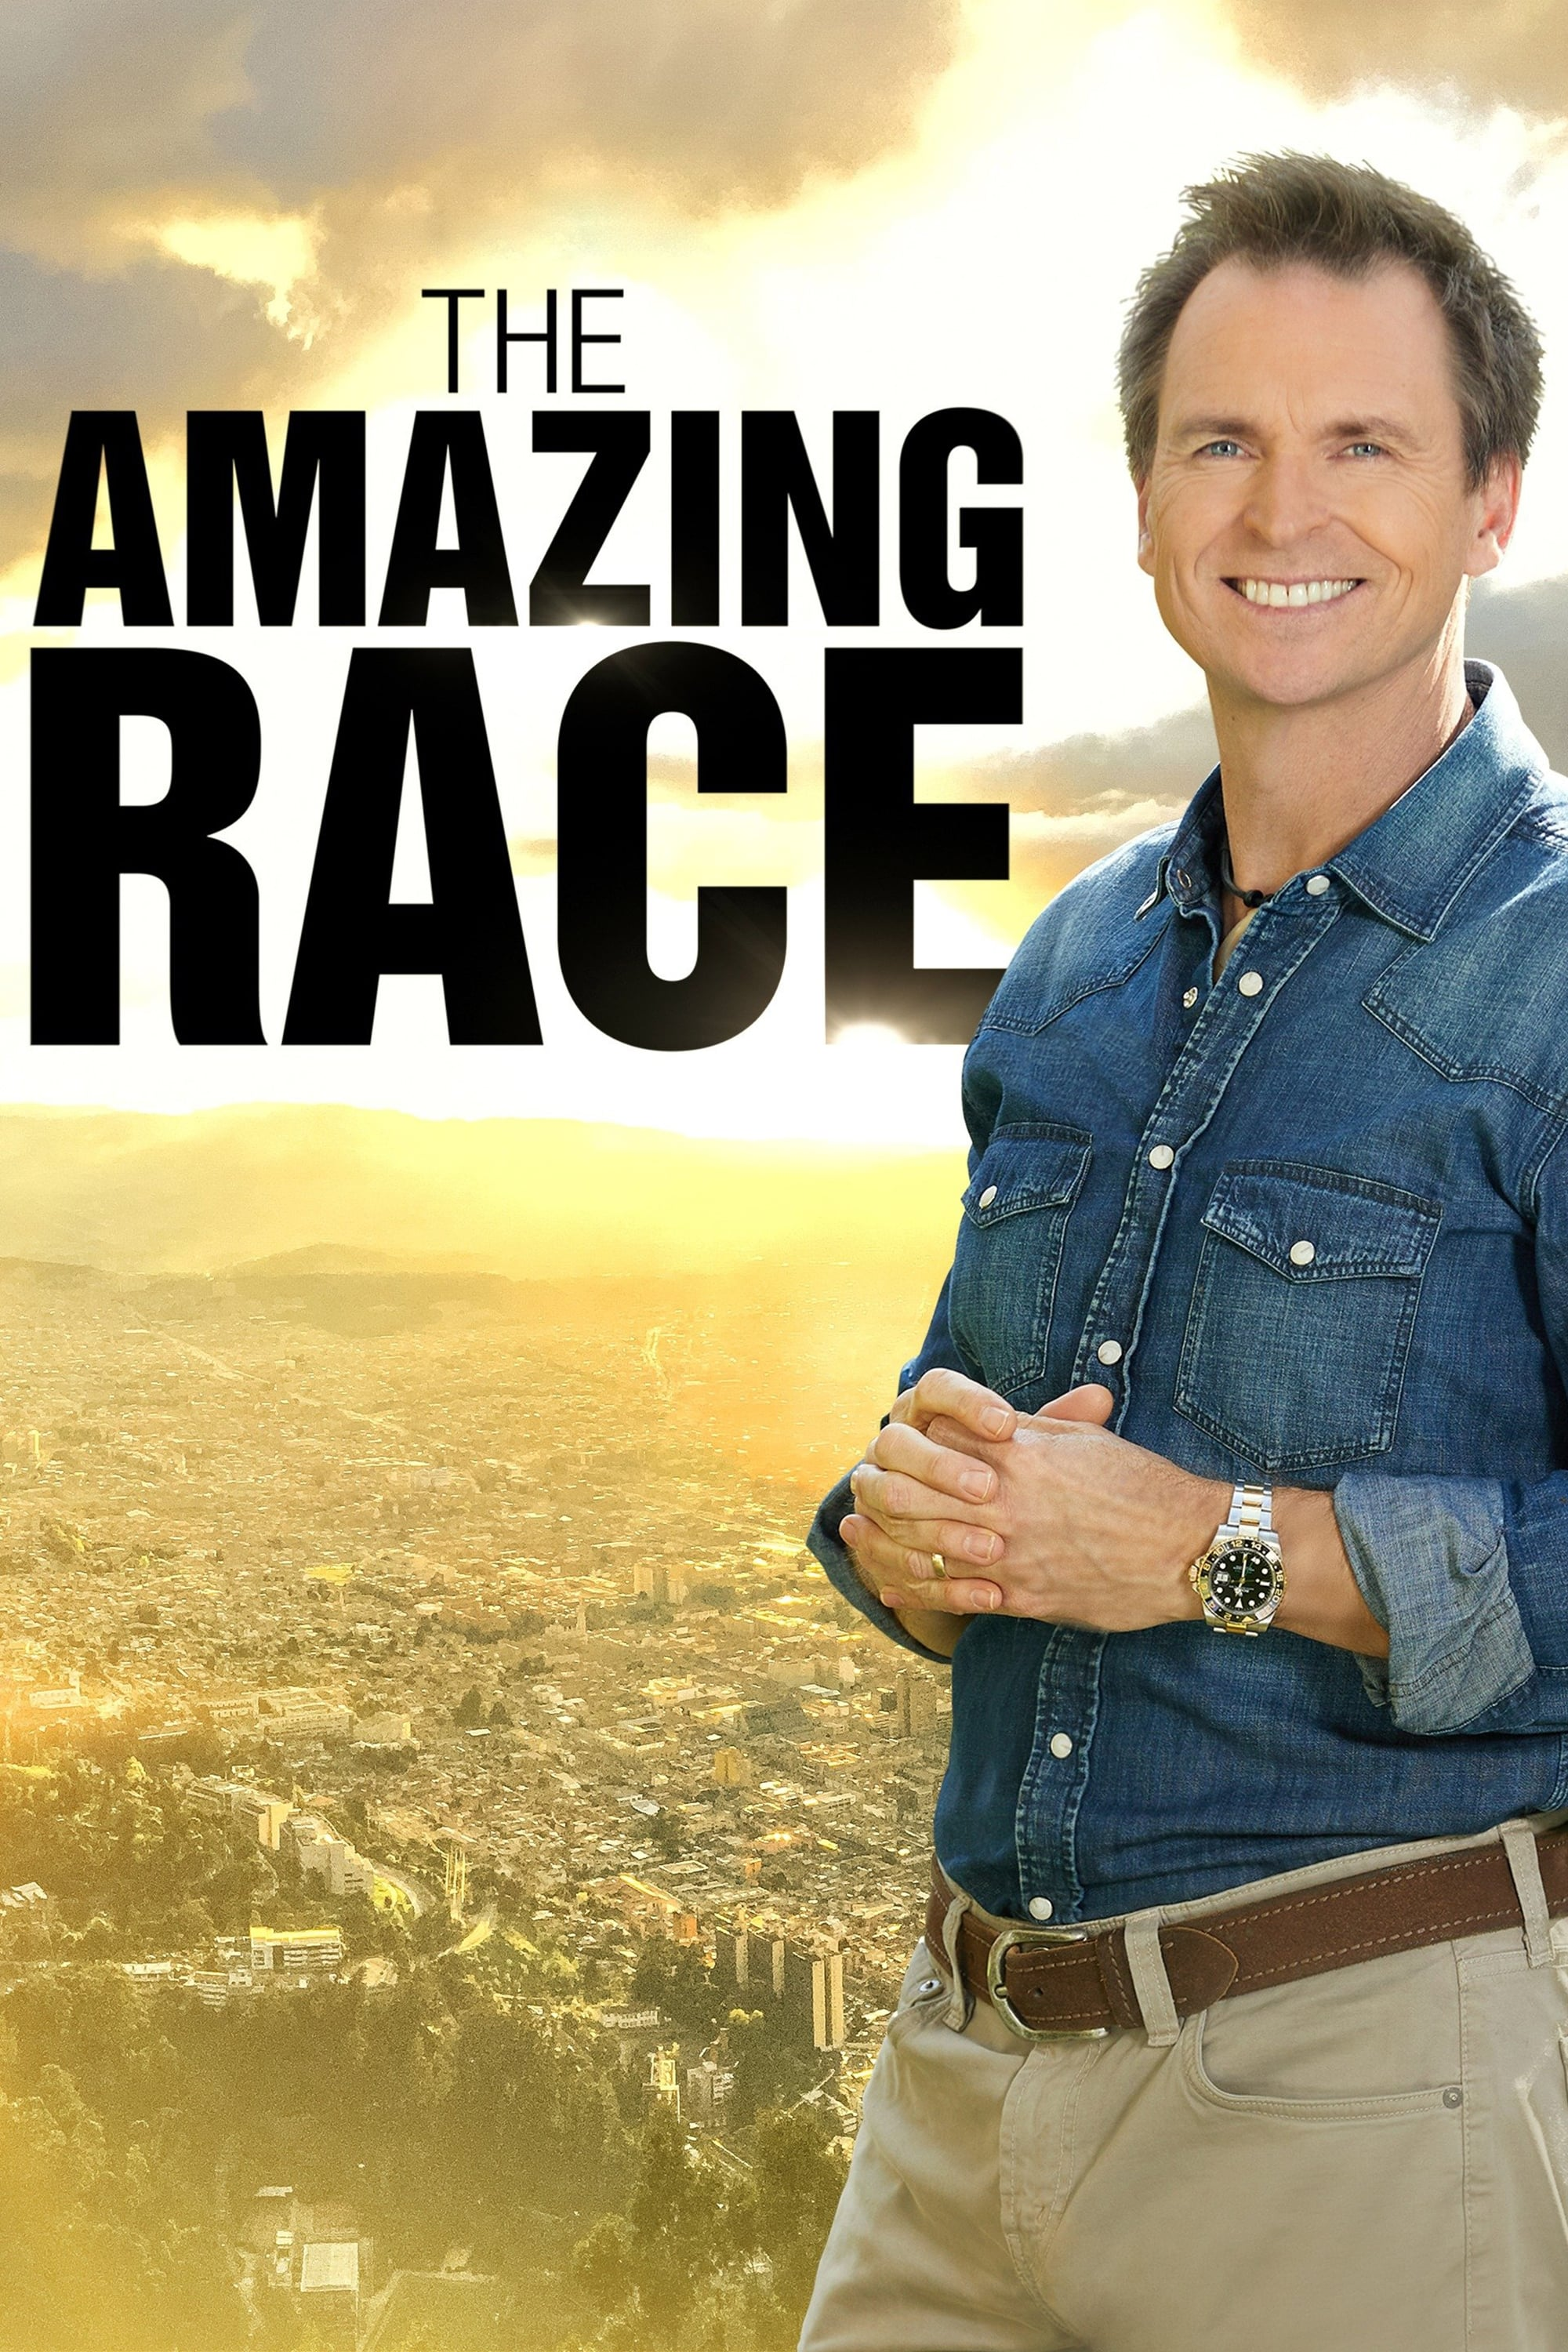 The Amazing Race Season 32